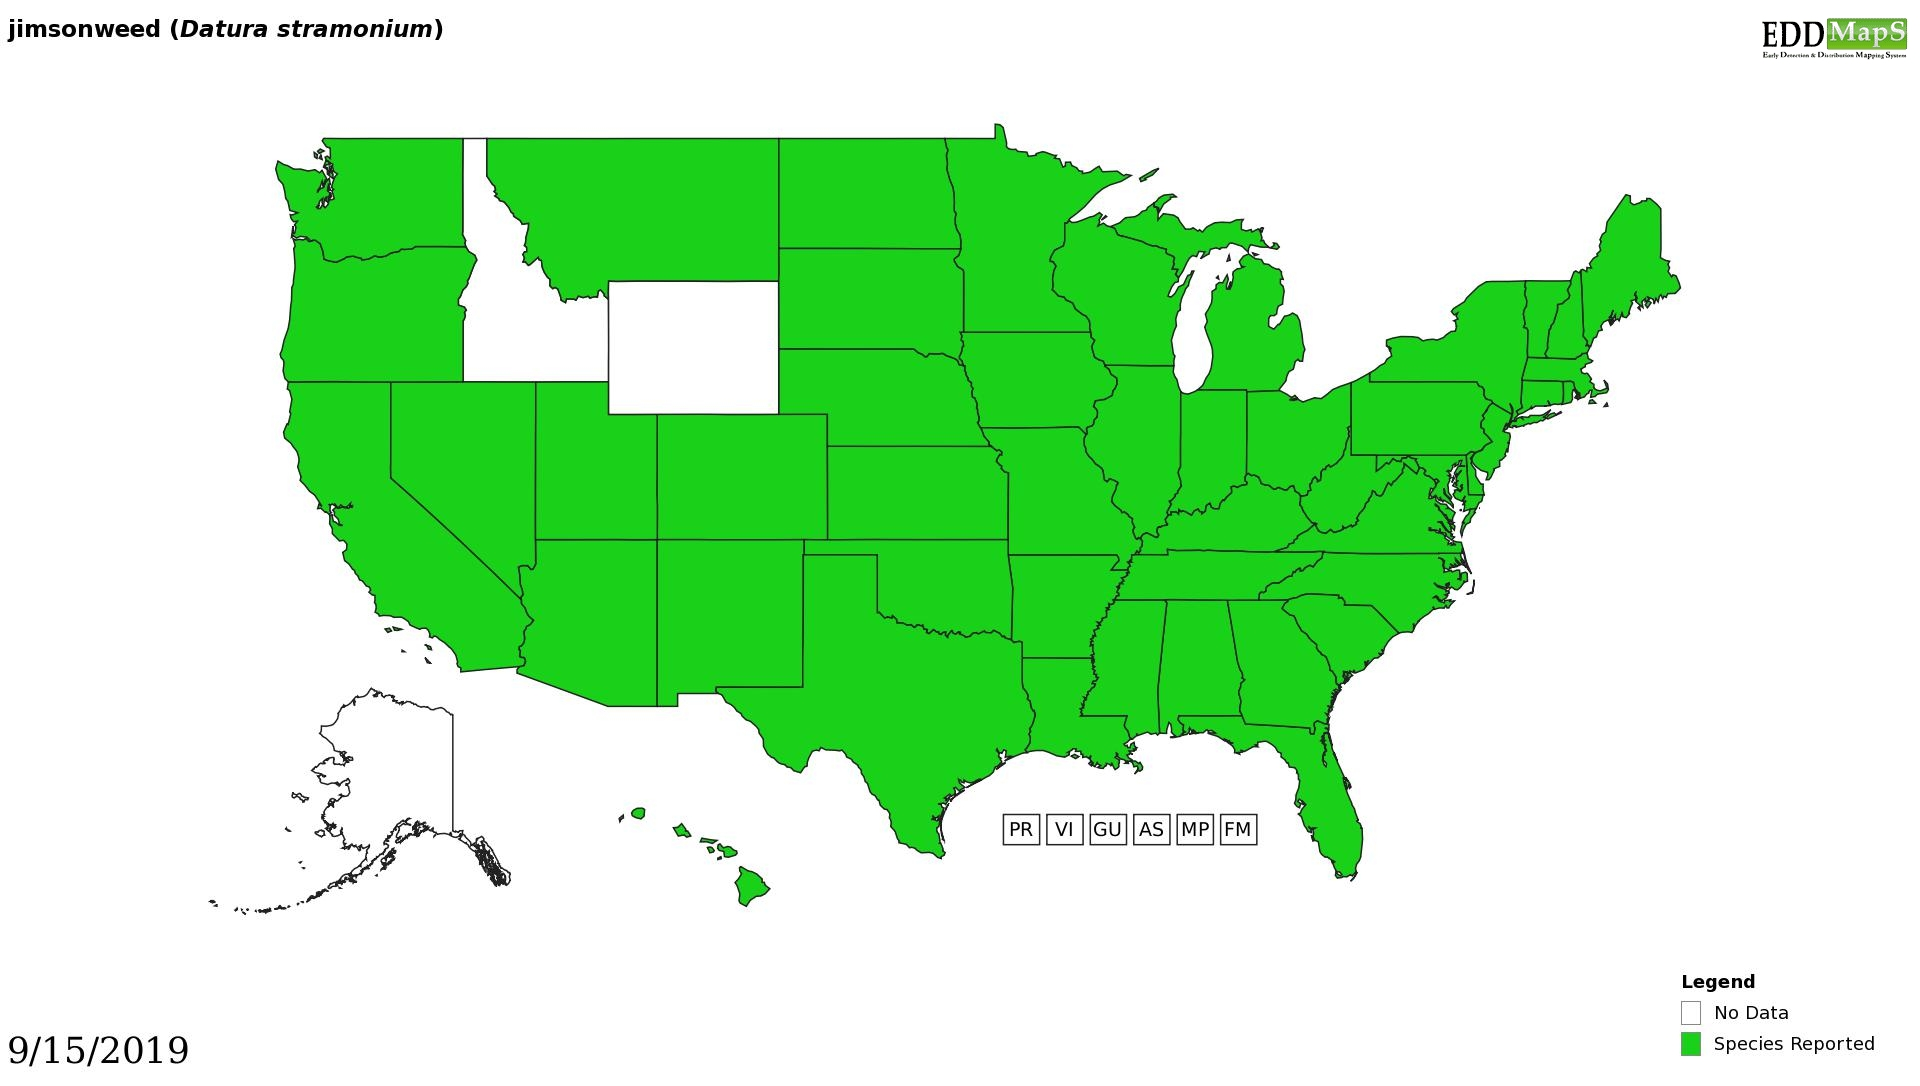 Jimsonweed distribution - United States